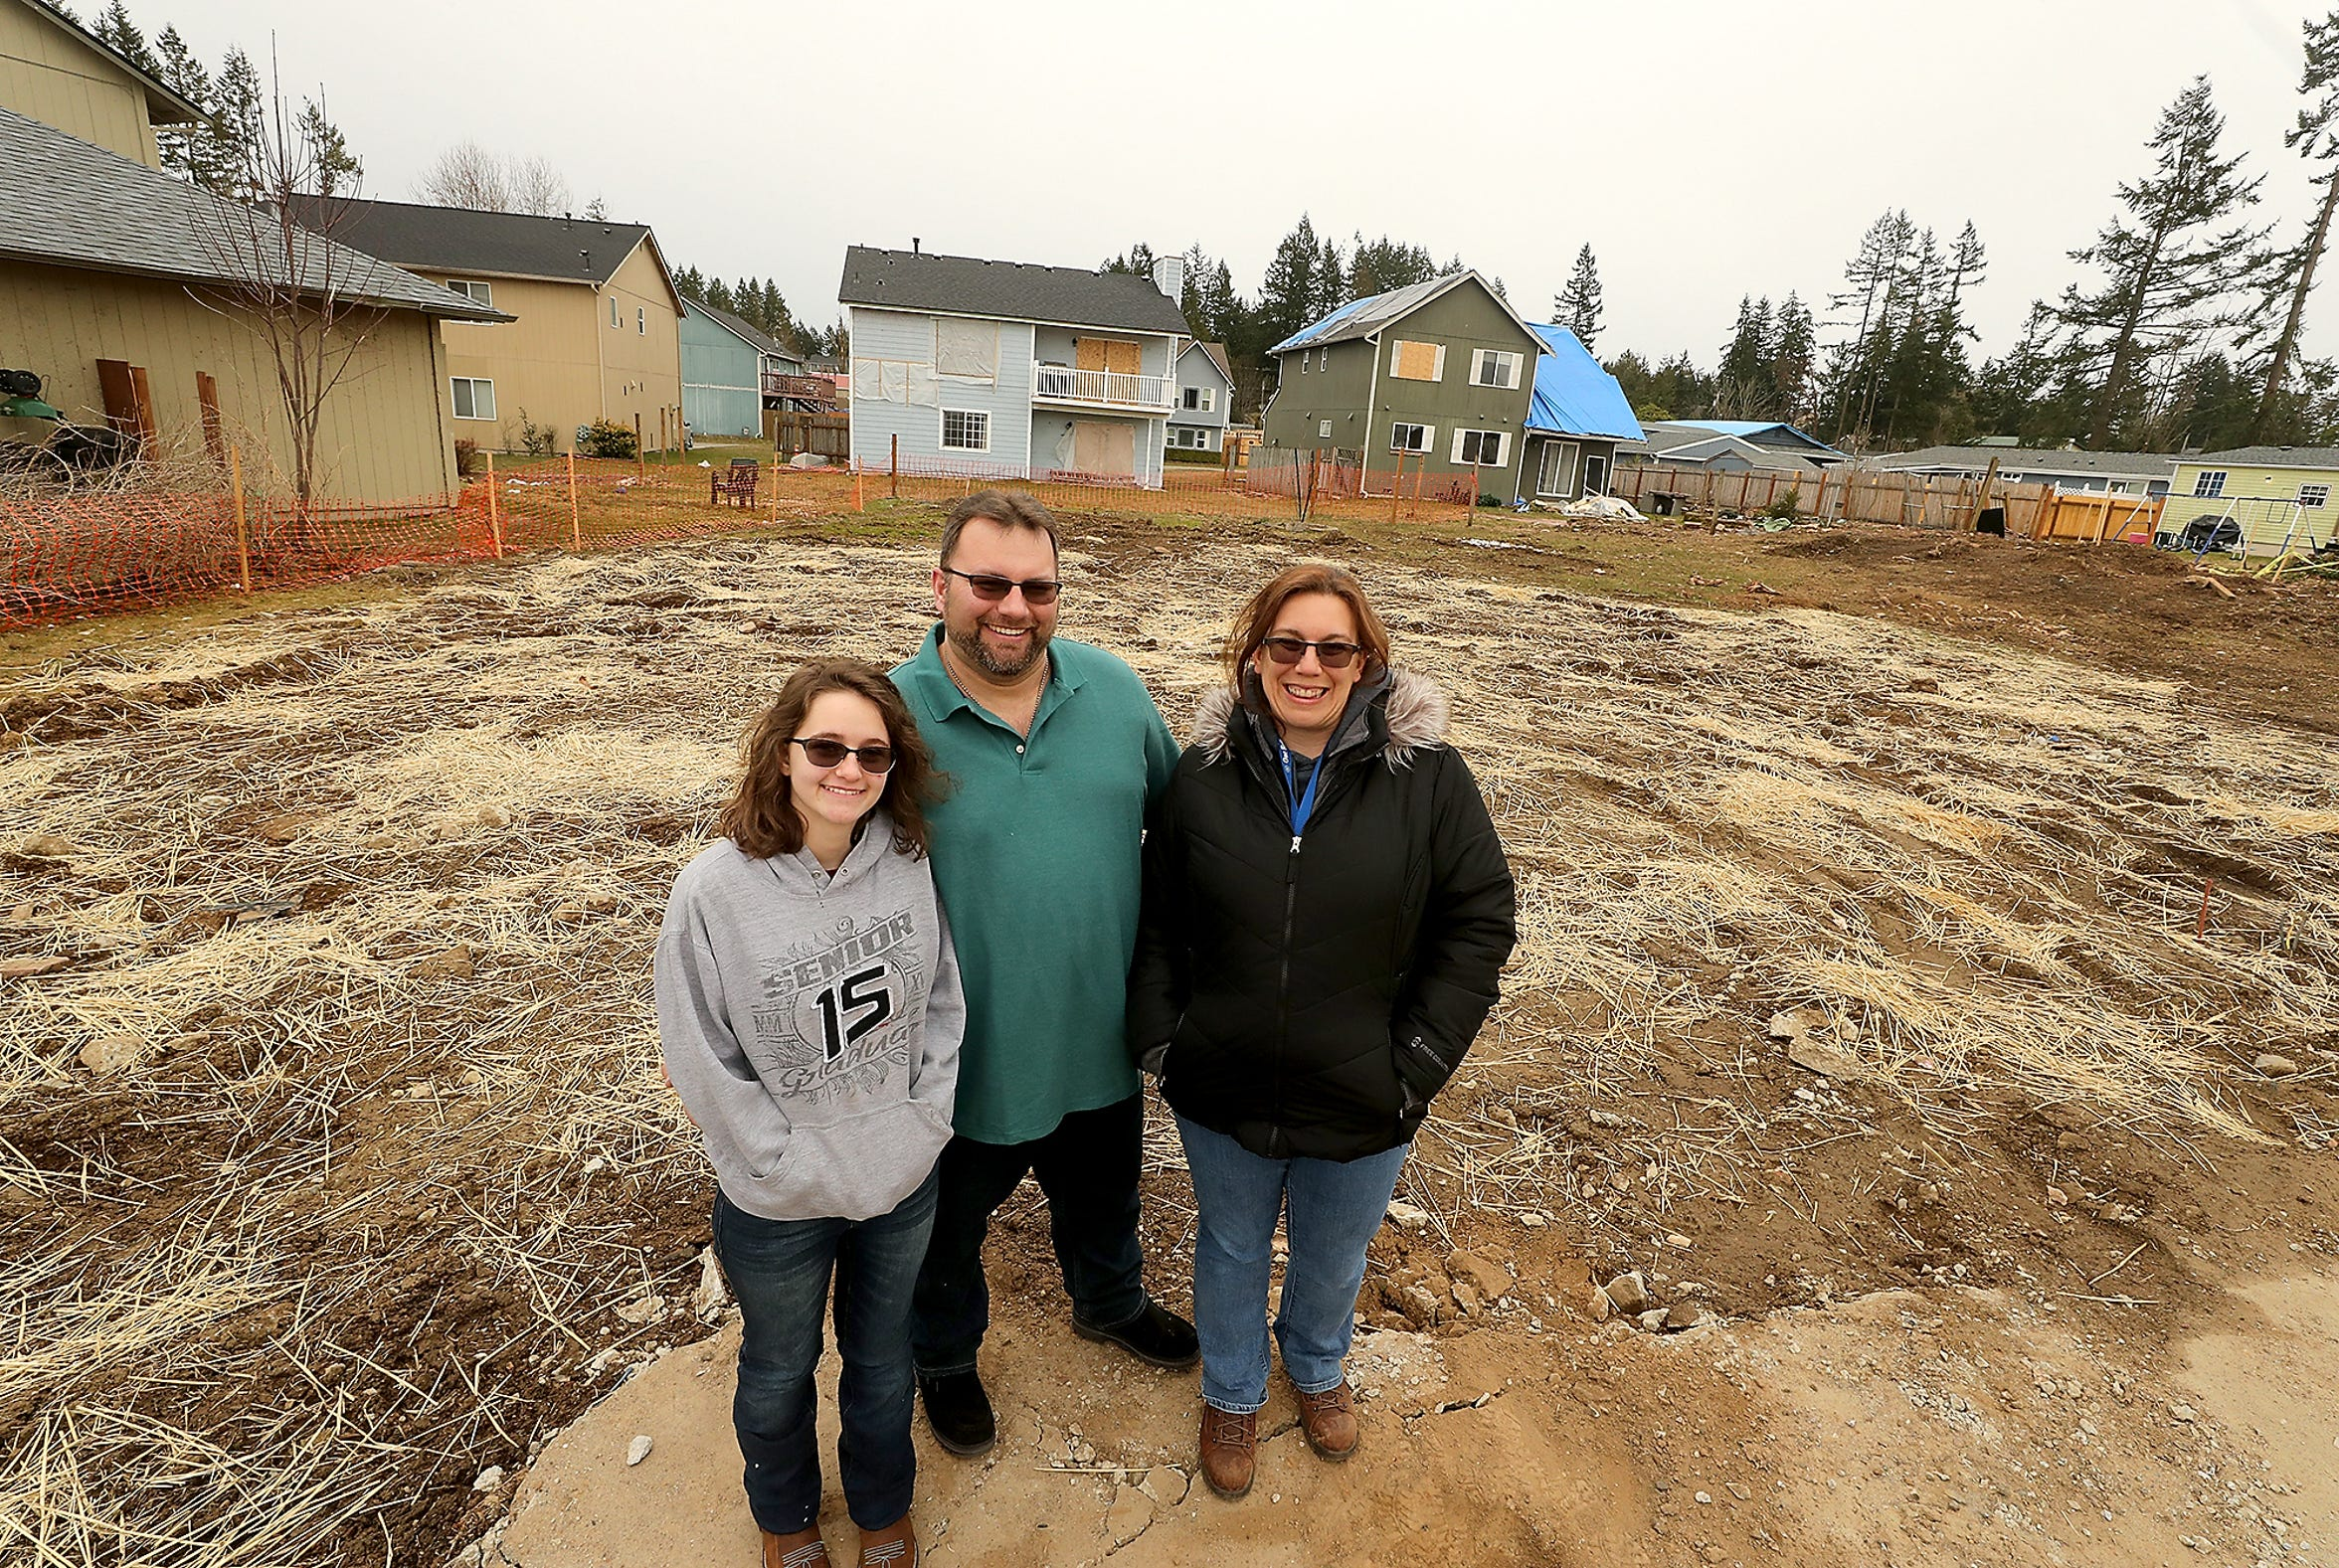 John and Beth Mueller with their daughter Jasmin, left, stand at the site where their home once stood on Tiburon Court in Port Orchard on Monday. The Muellers' home was destroyed during the December 2018 tornado when the storm ripped the entire roof off the structure, and it became well-known because news footage that documented their home without its roof spread far and wide.